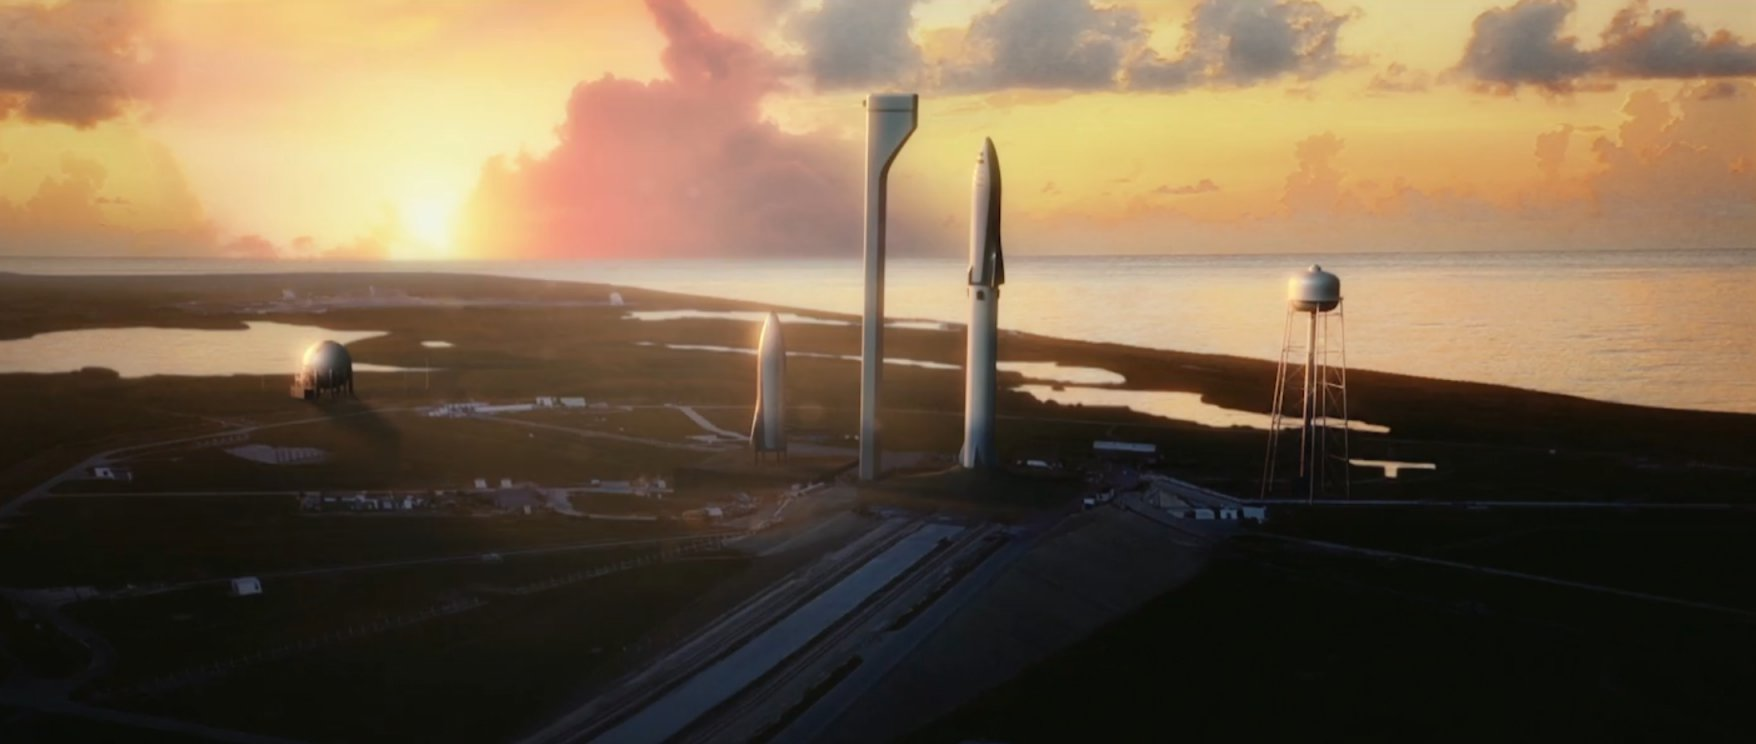 BFR at 39A (SpaceX)